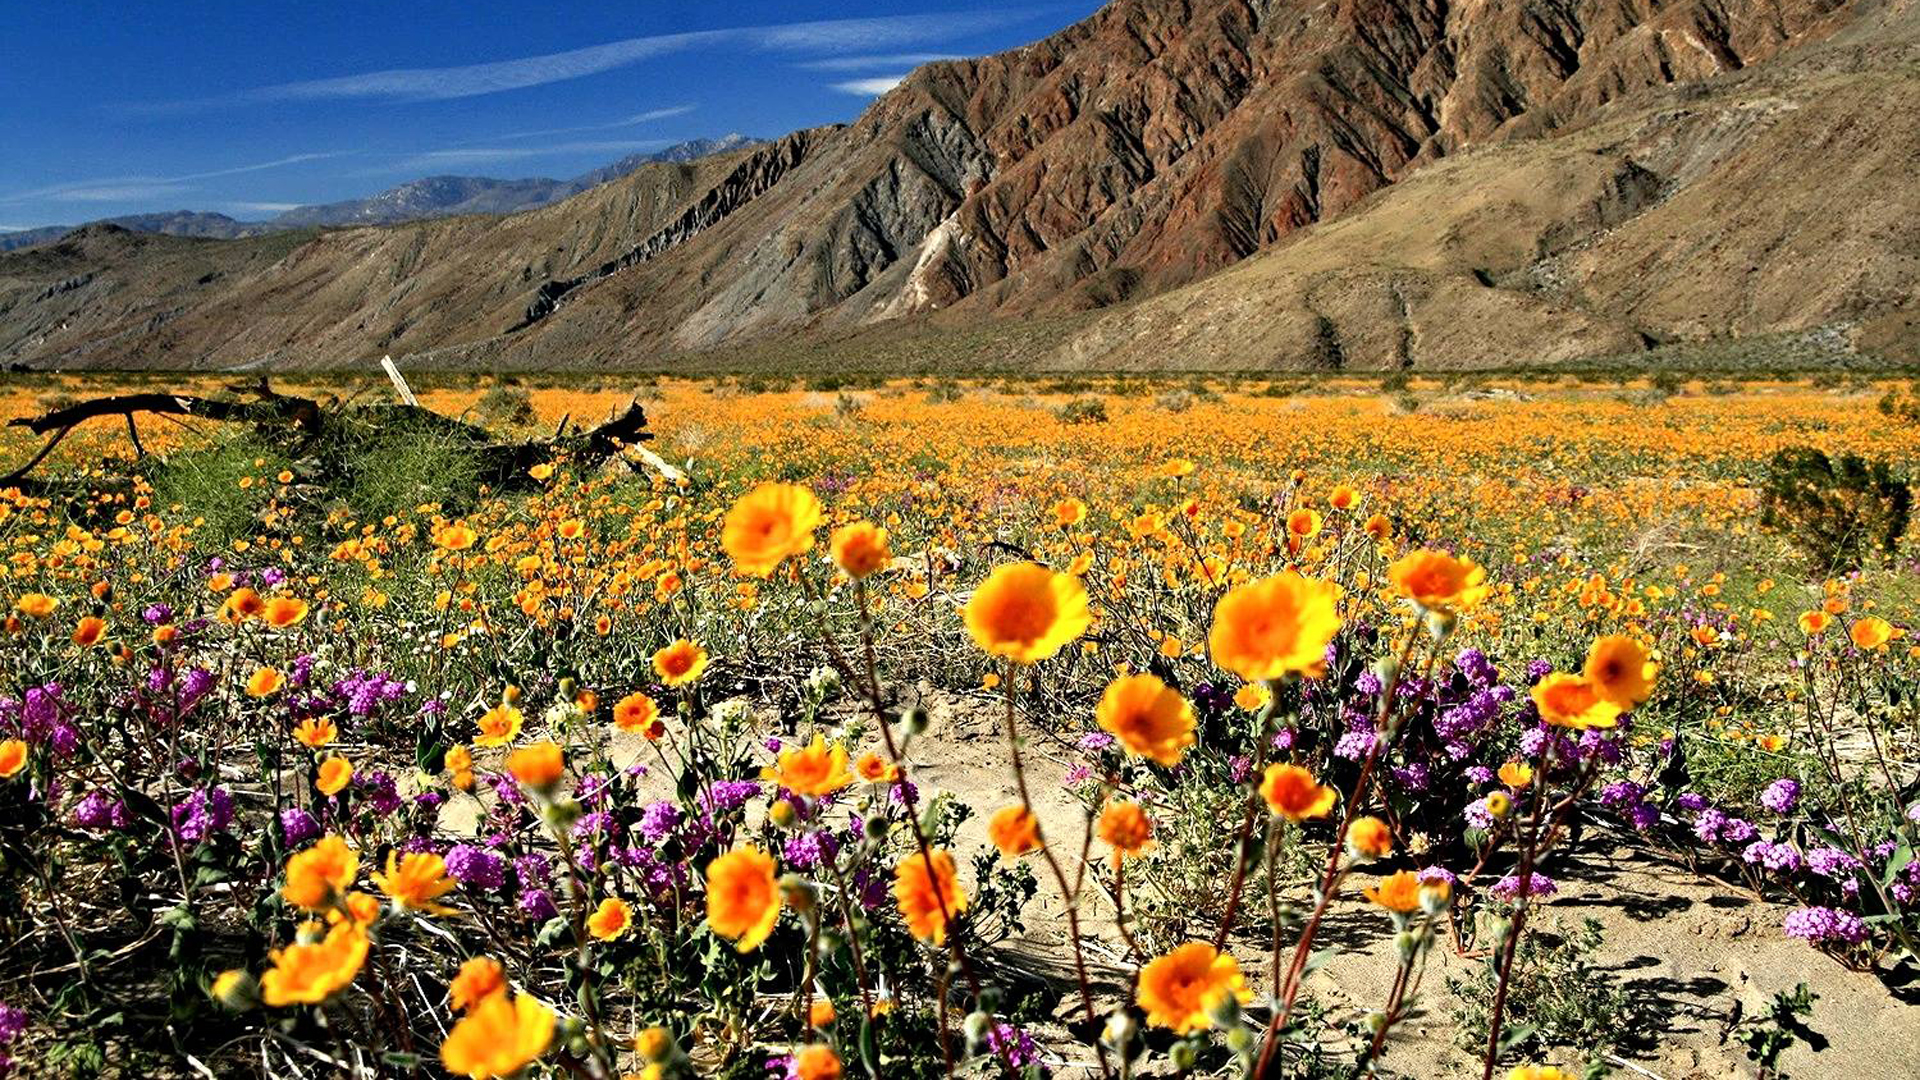 Flowers bloom at Anza-Borrego Desert State Park in this file photo posted on the park's Facebook page on Jan. 1, 2016.